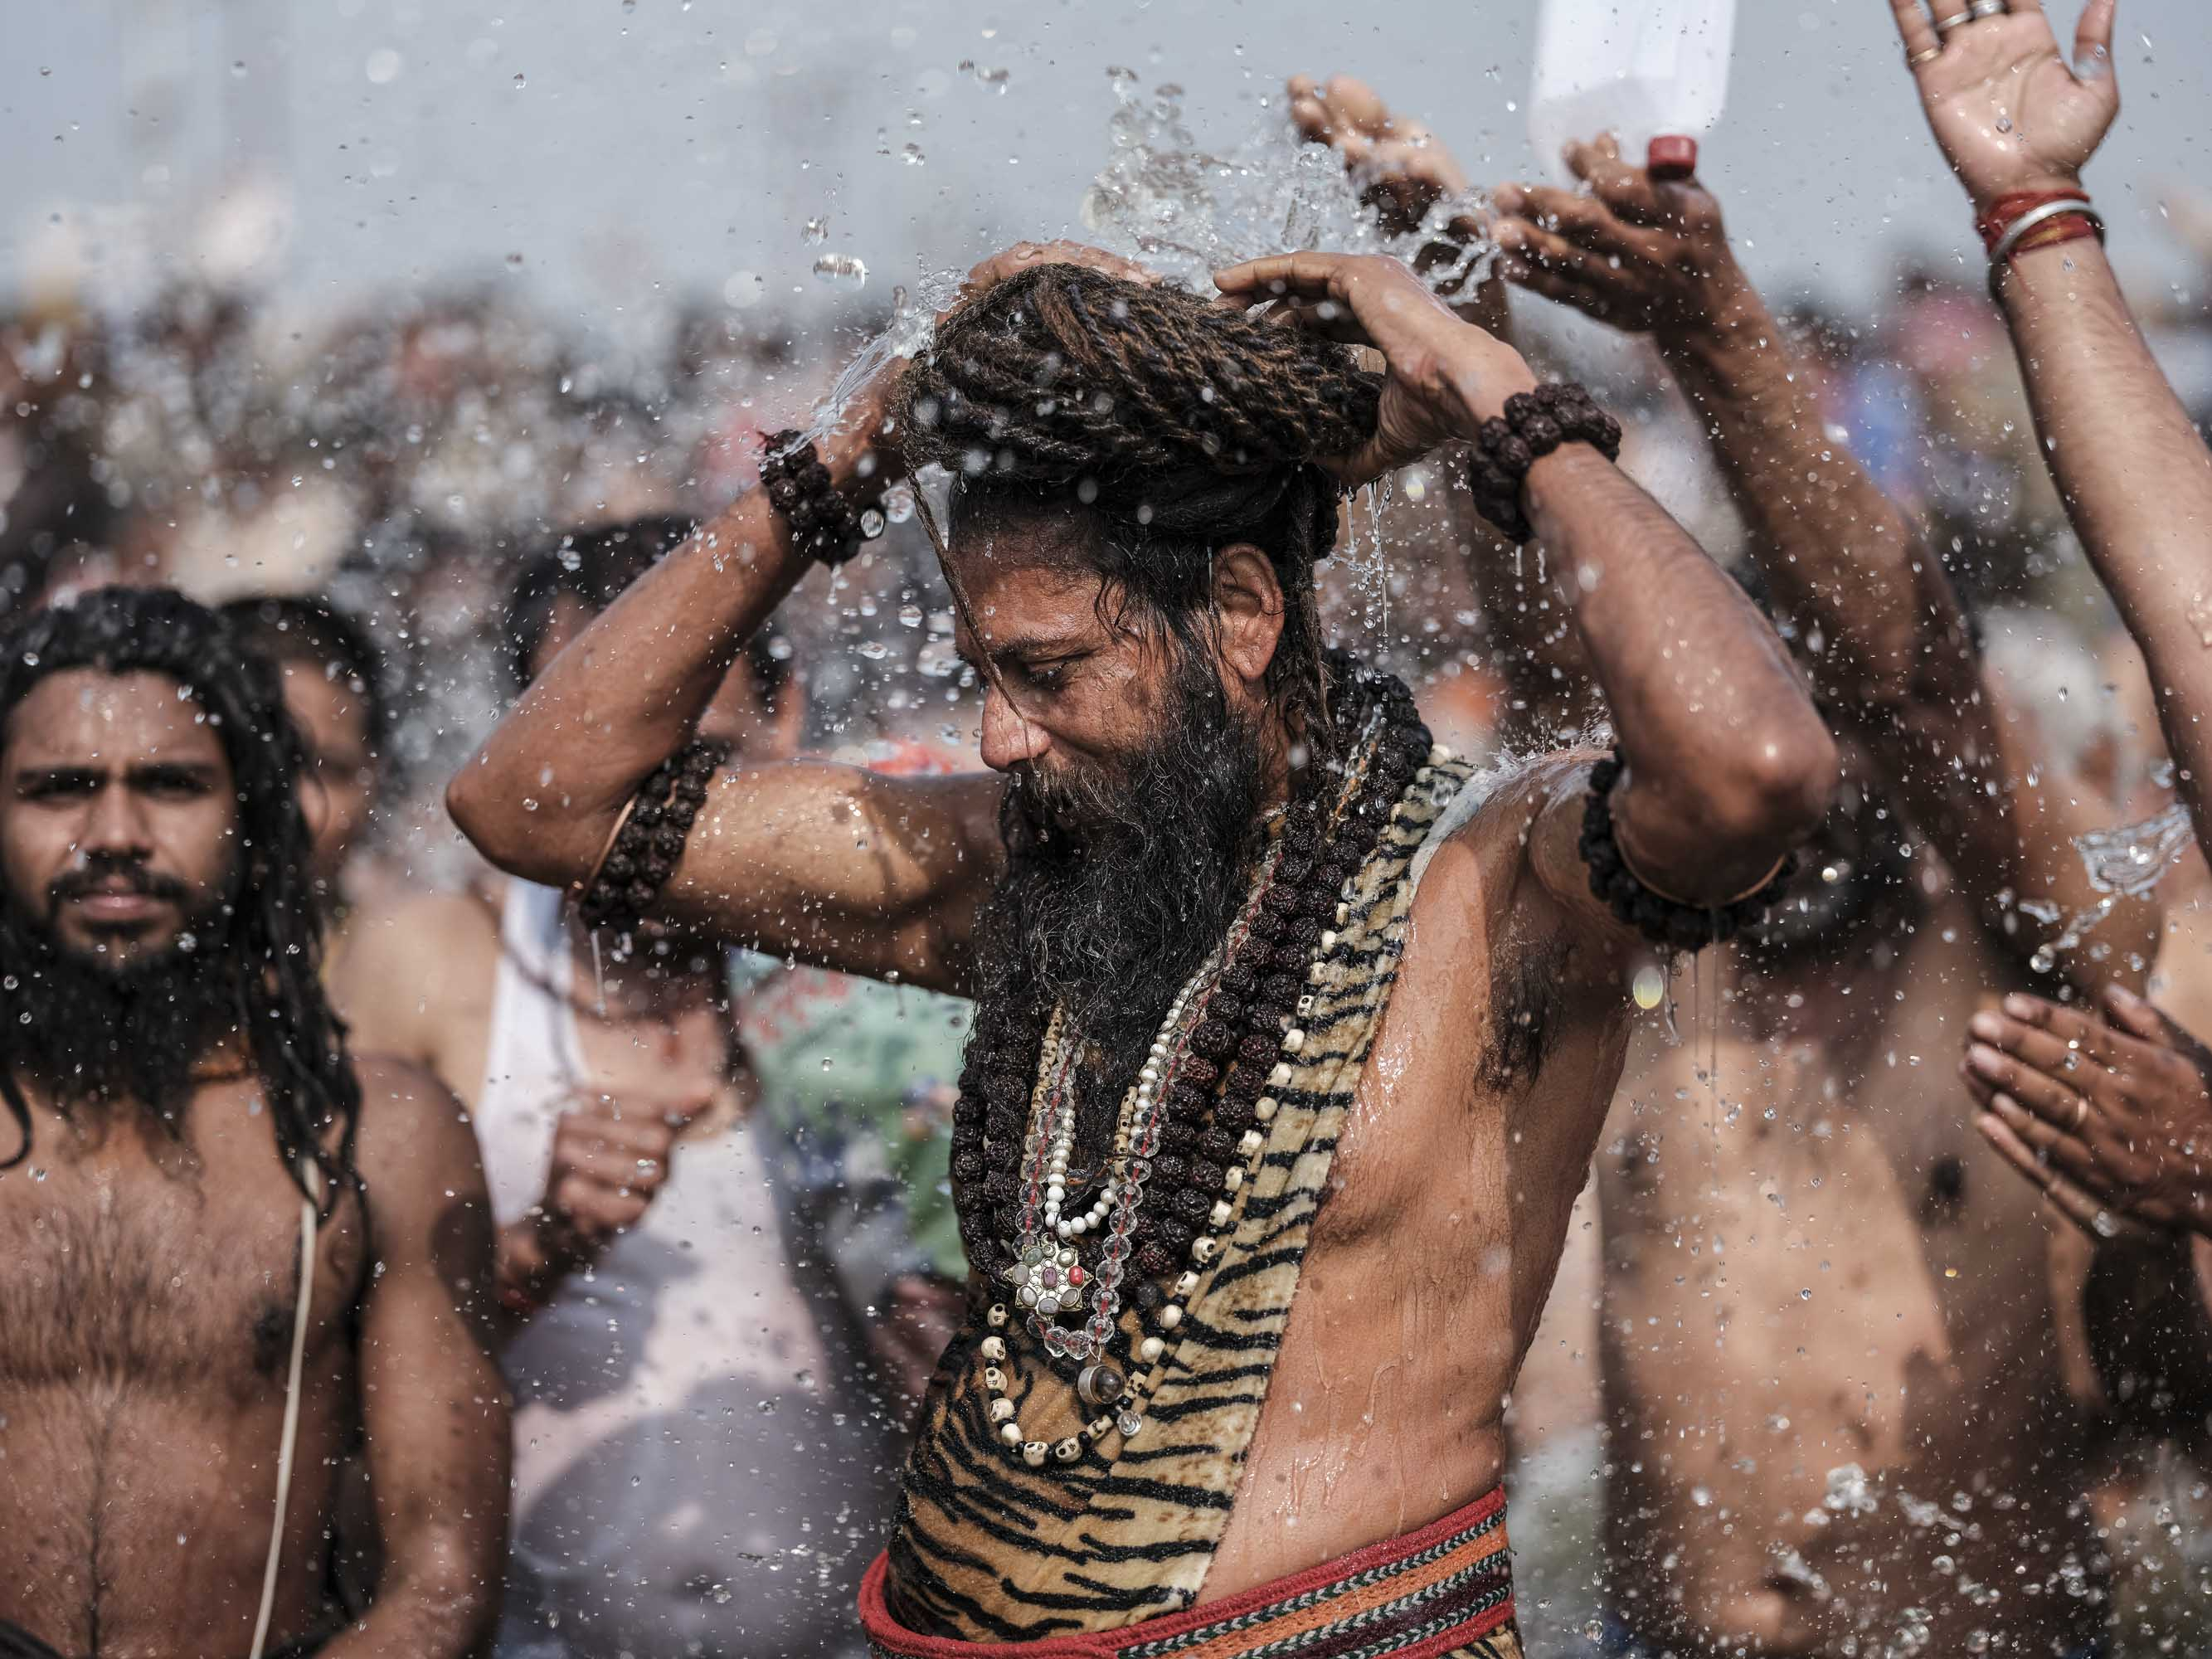 baba bath crowd 4 February pilgrims Kumbh mela 2019 India Allahabad Prayagraj Ardh hindu religious Festival event rivers photographer jose jeuland photography